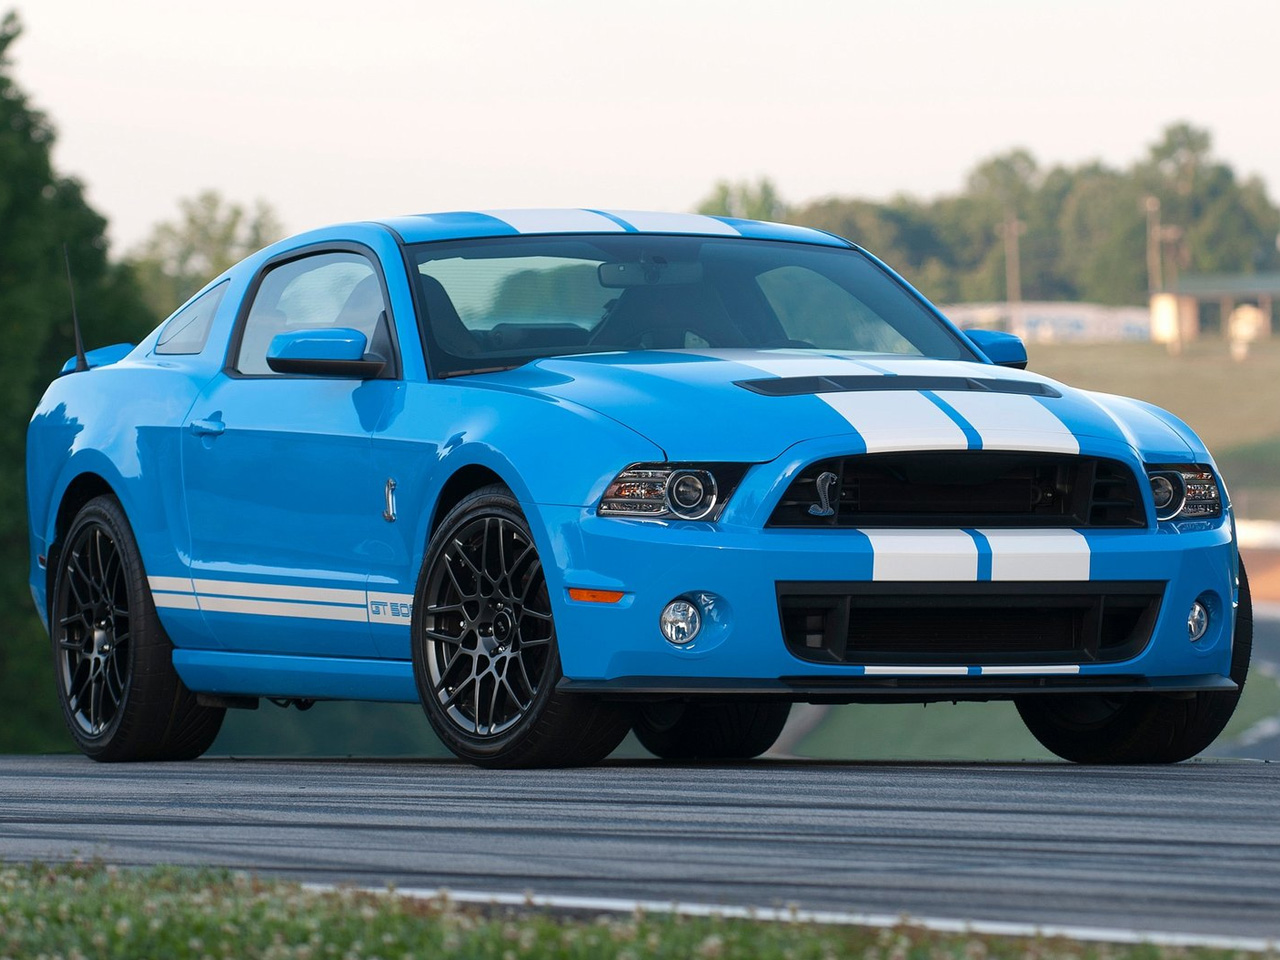 2013 ford mustang shelby gt500. Black Bedroom Furniture Sets. Home Design Ideas